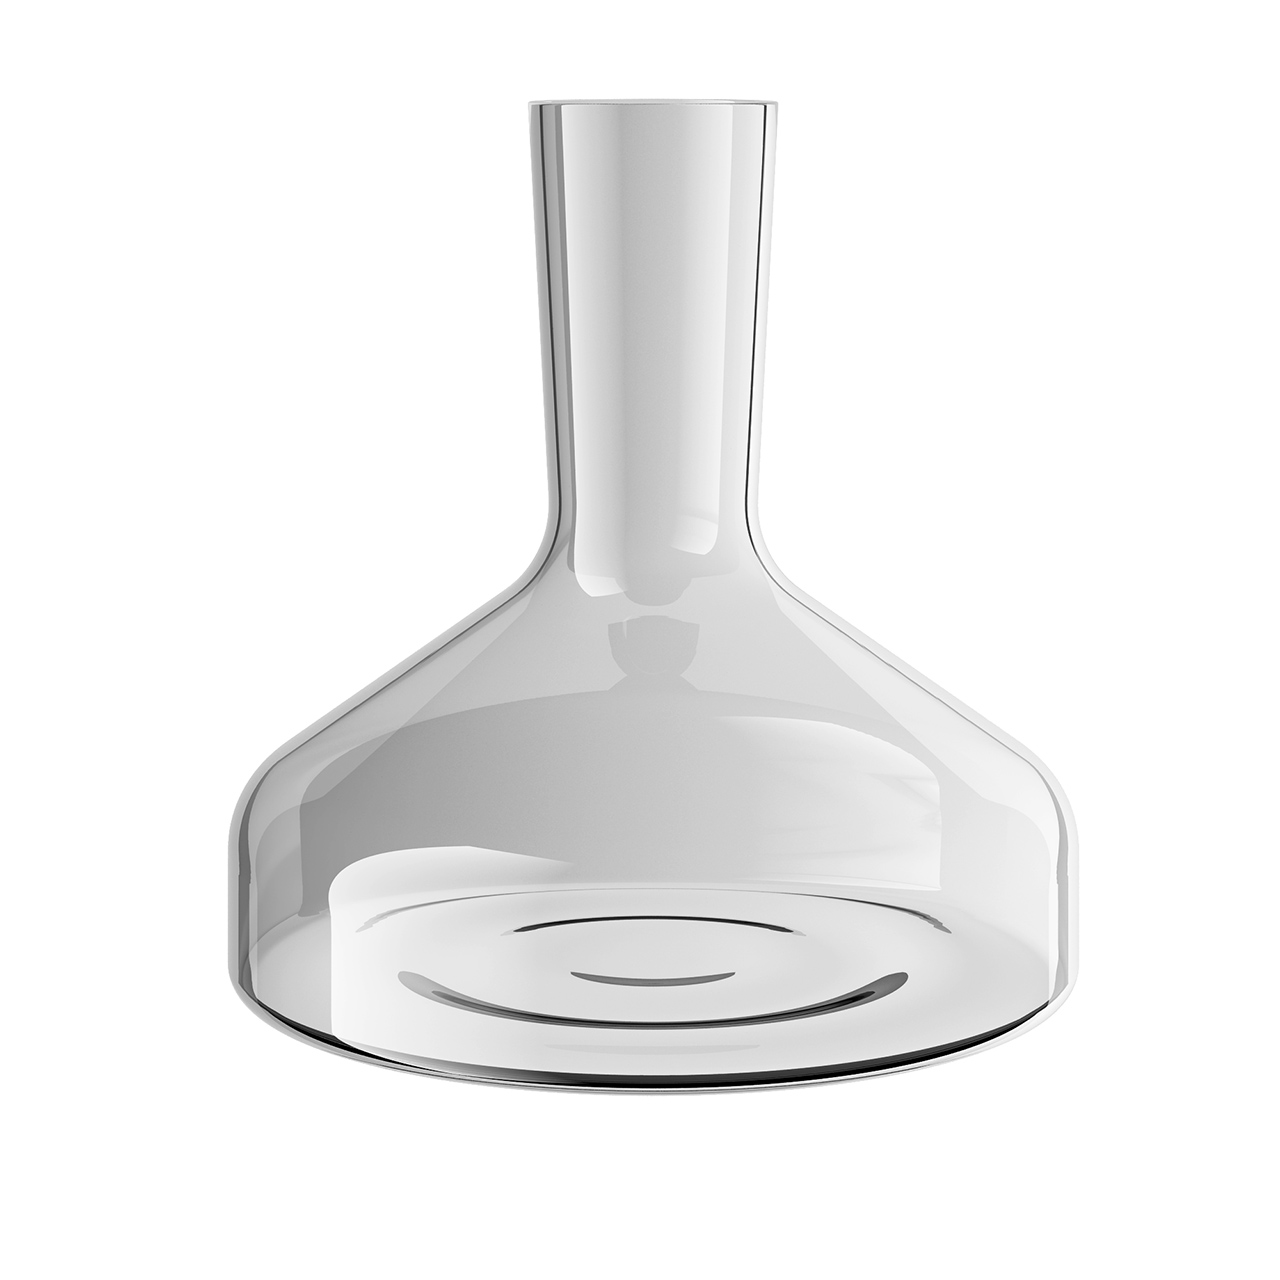 Decanter Decanter 190 cl by Iittala